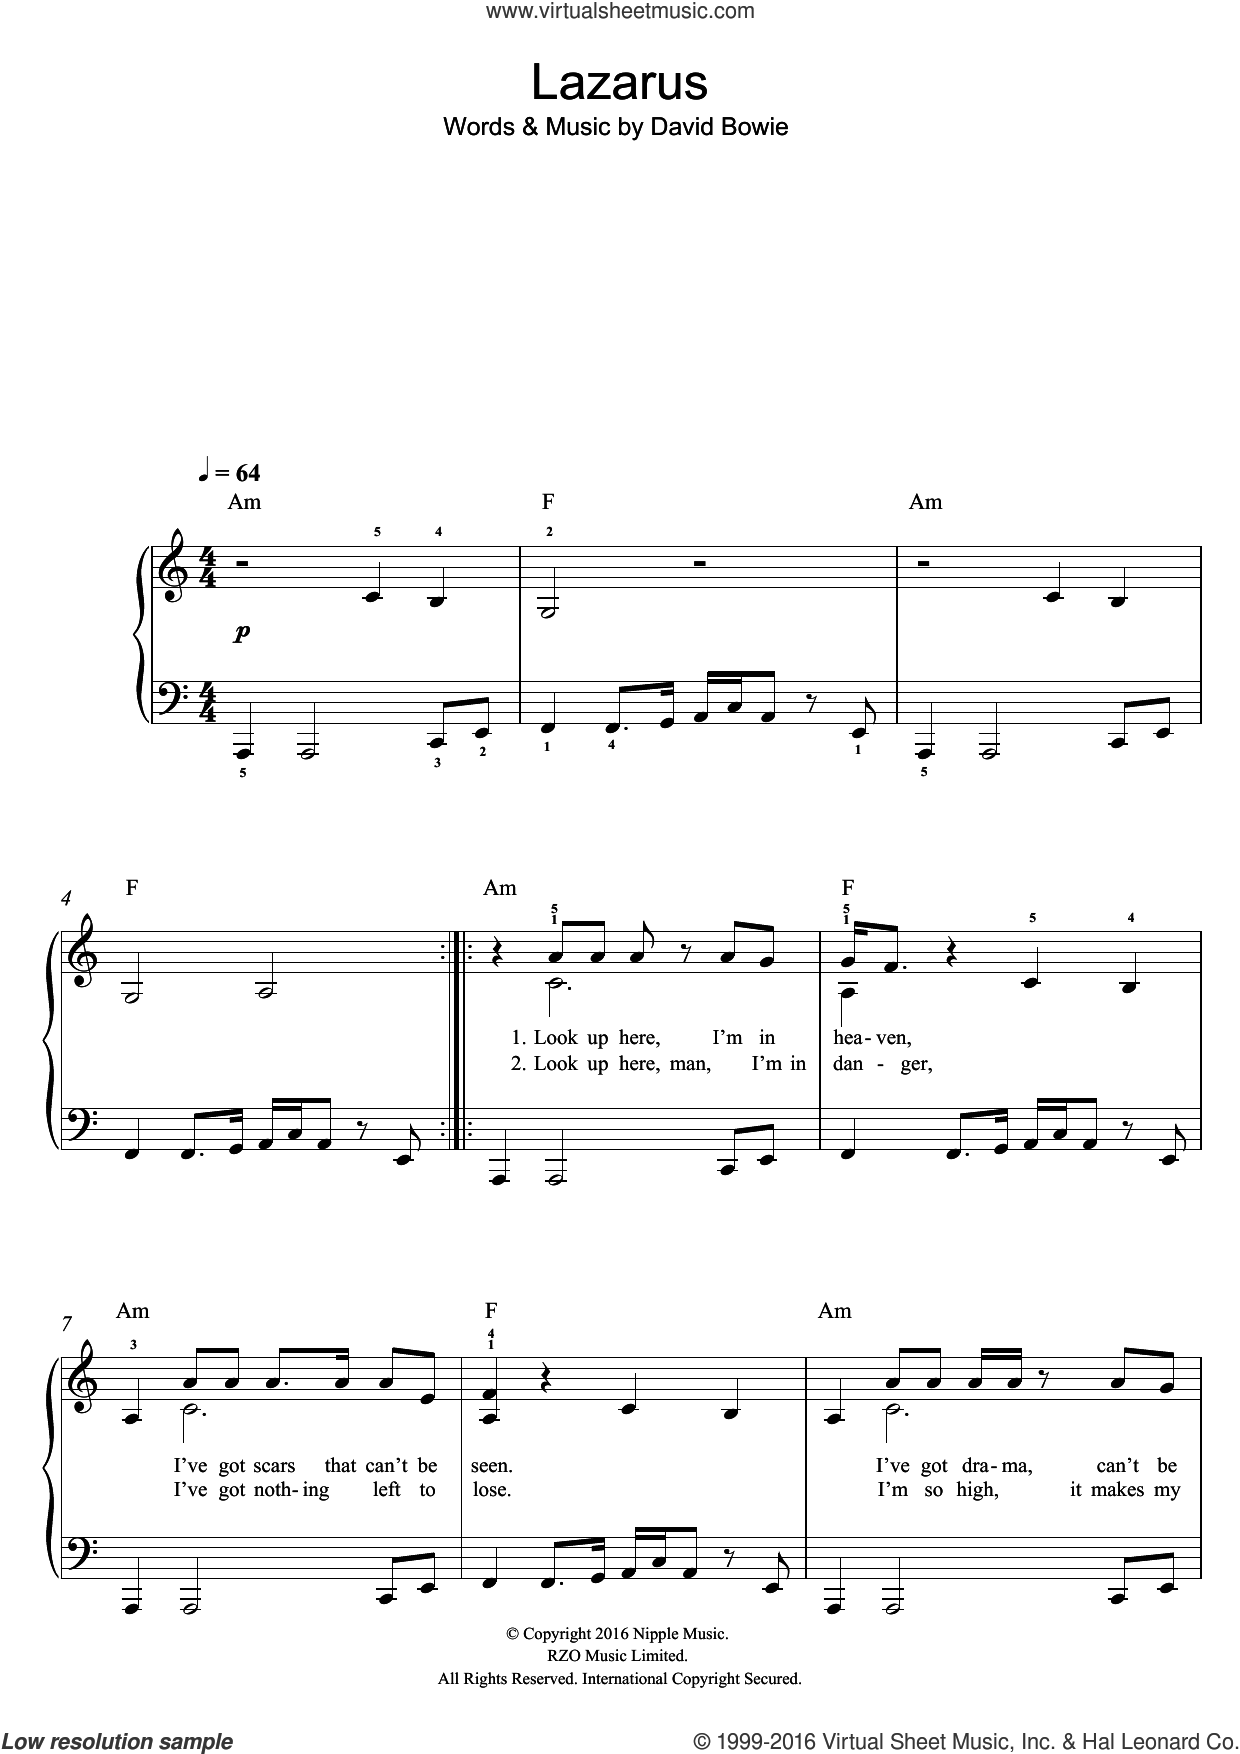 Lazarus sheet music for voice, piano or guitar by David Bowie. Score Image Preview.